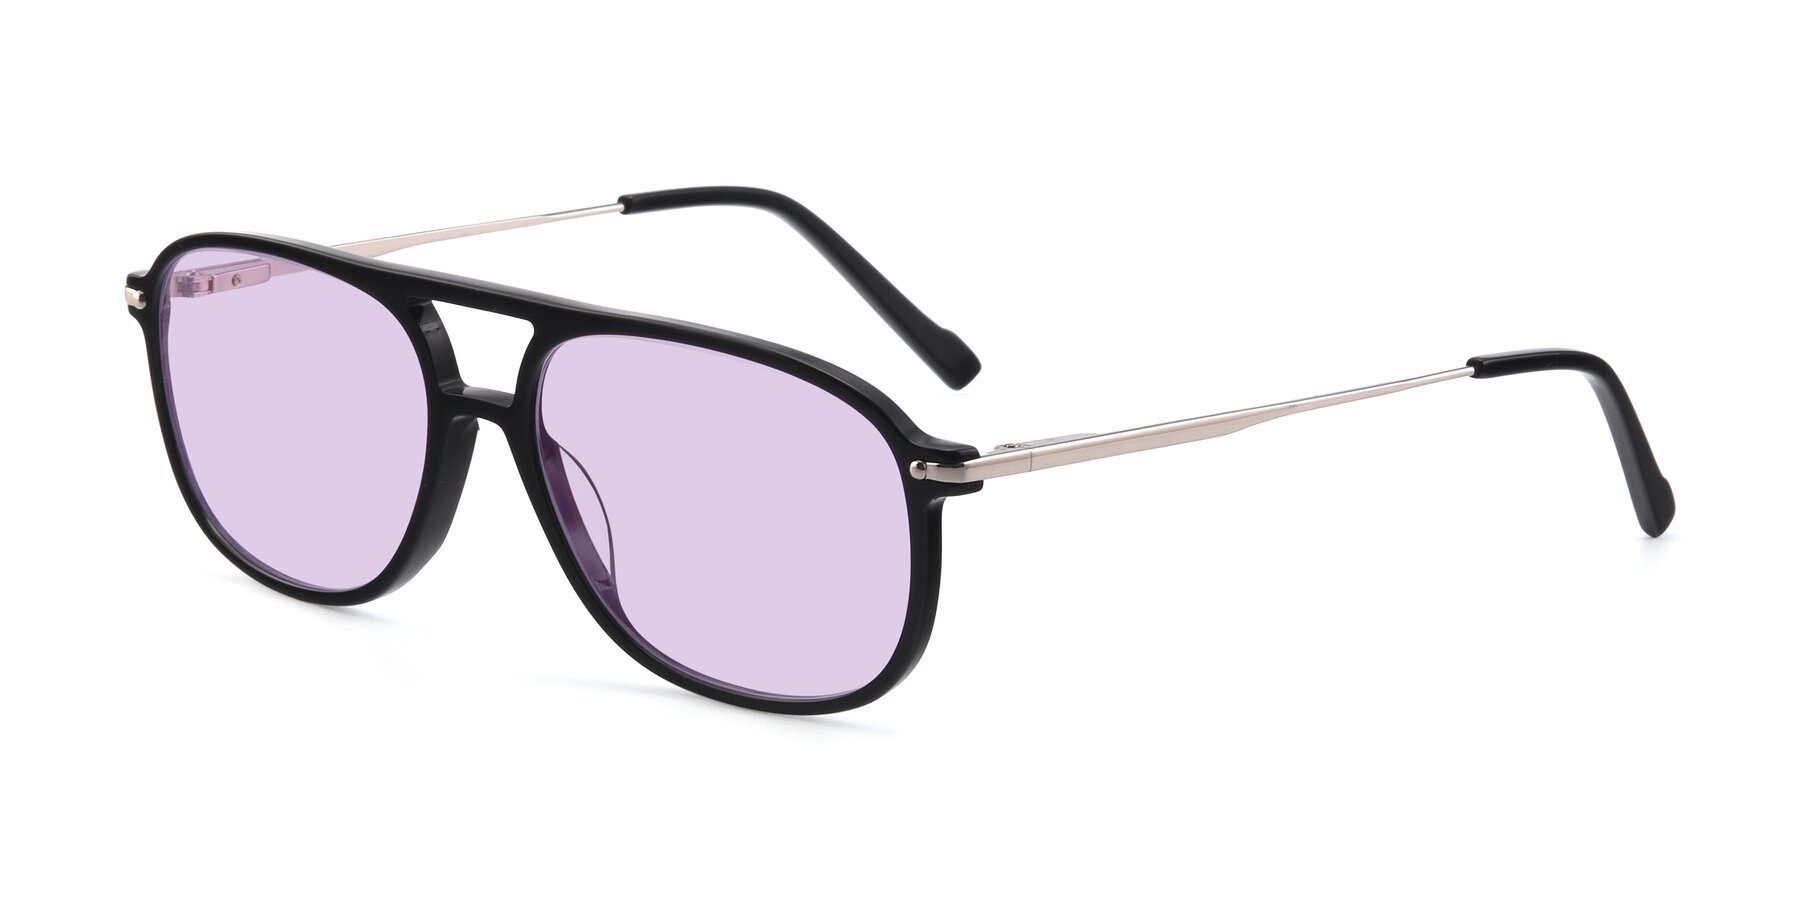 Angle of 17580 in Black with Light Purple Tinted Lenses